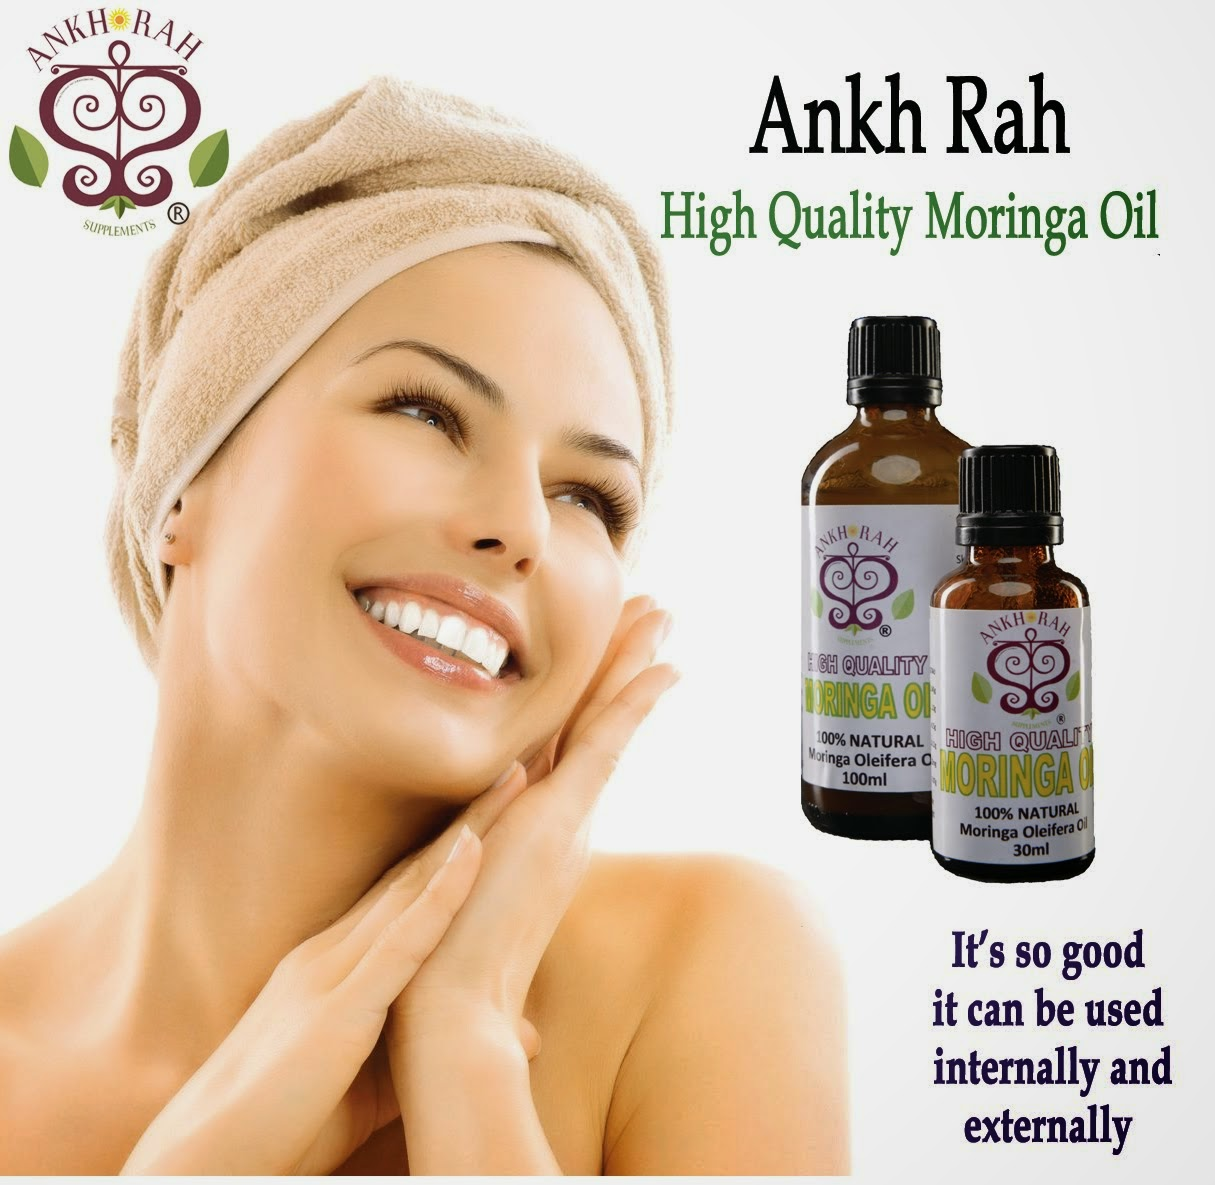 High Quality Moringa Oil